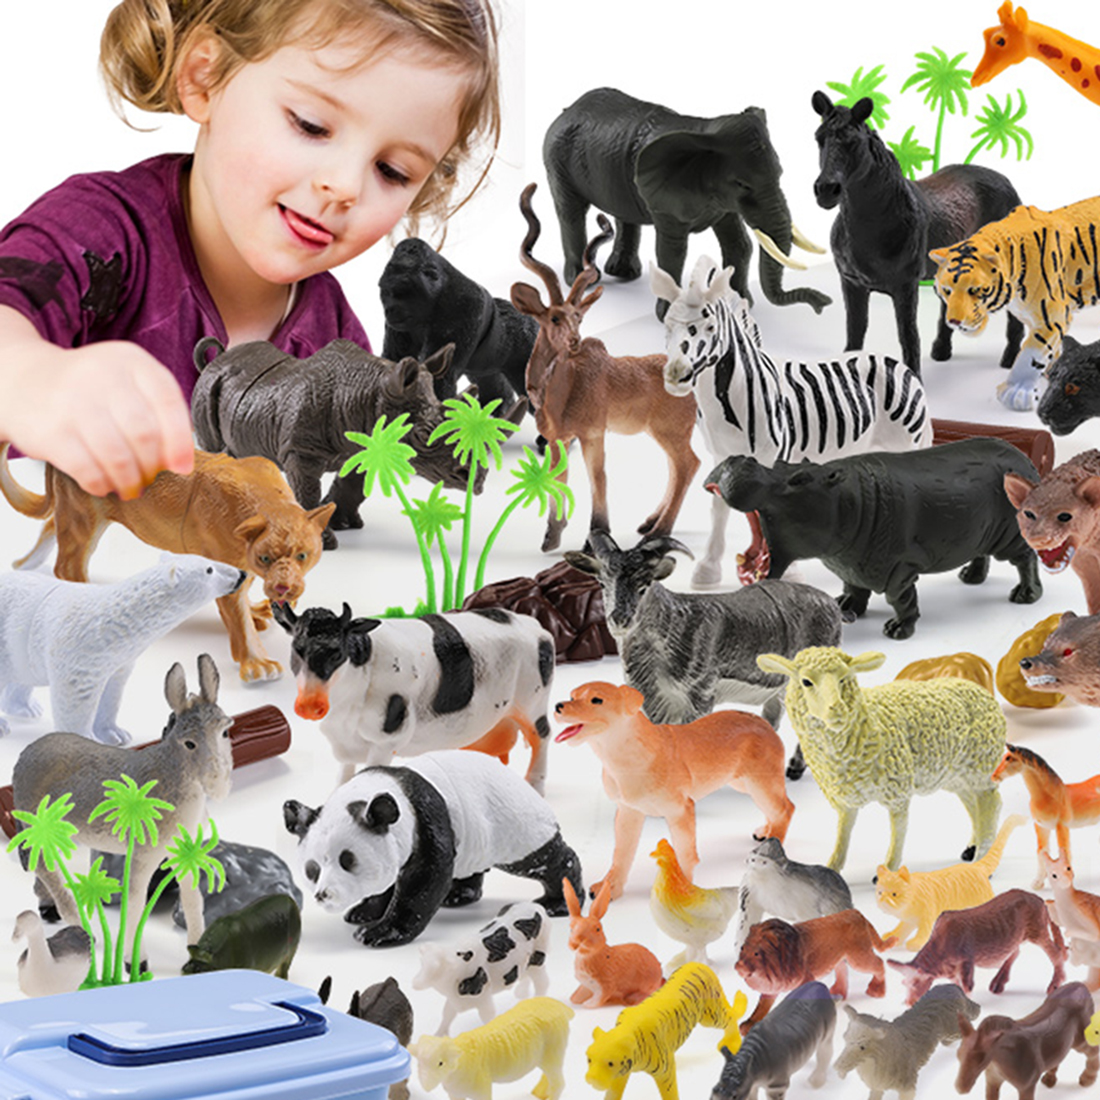 44pcs Genuine Wild Jungle Zoo Farm Animal Series Jaguar Collectible Model Kids Toy Early Learning Cognitive Toys Gifts-Random